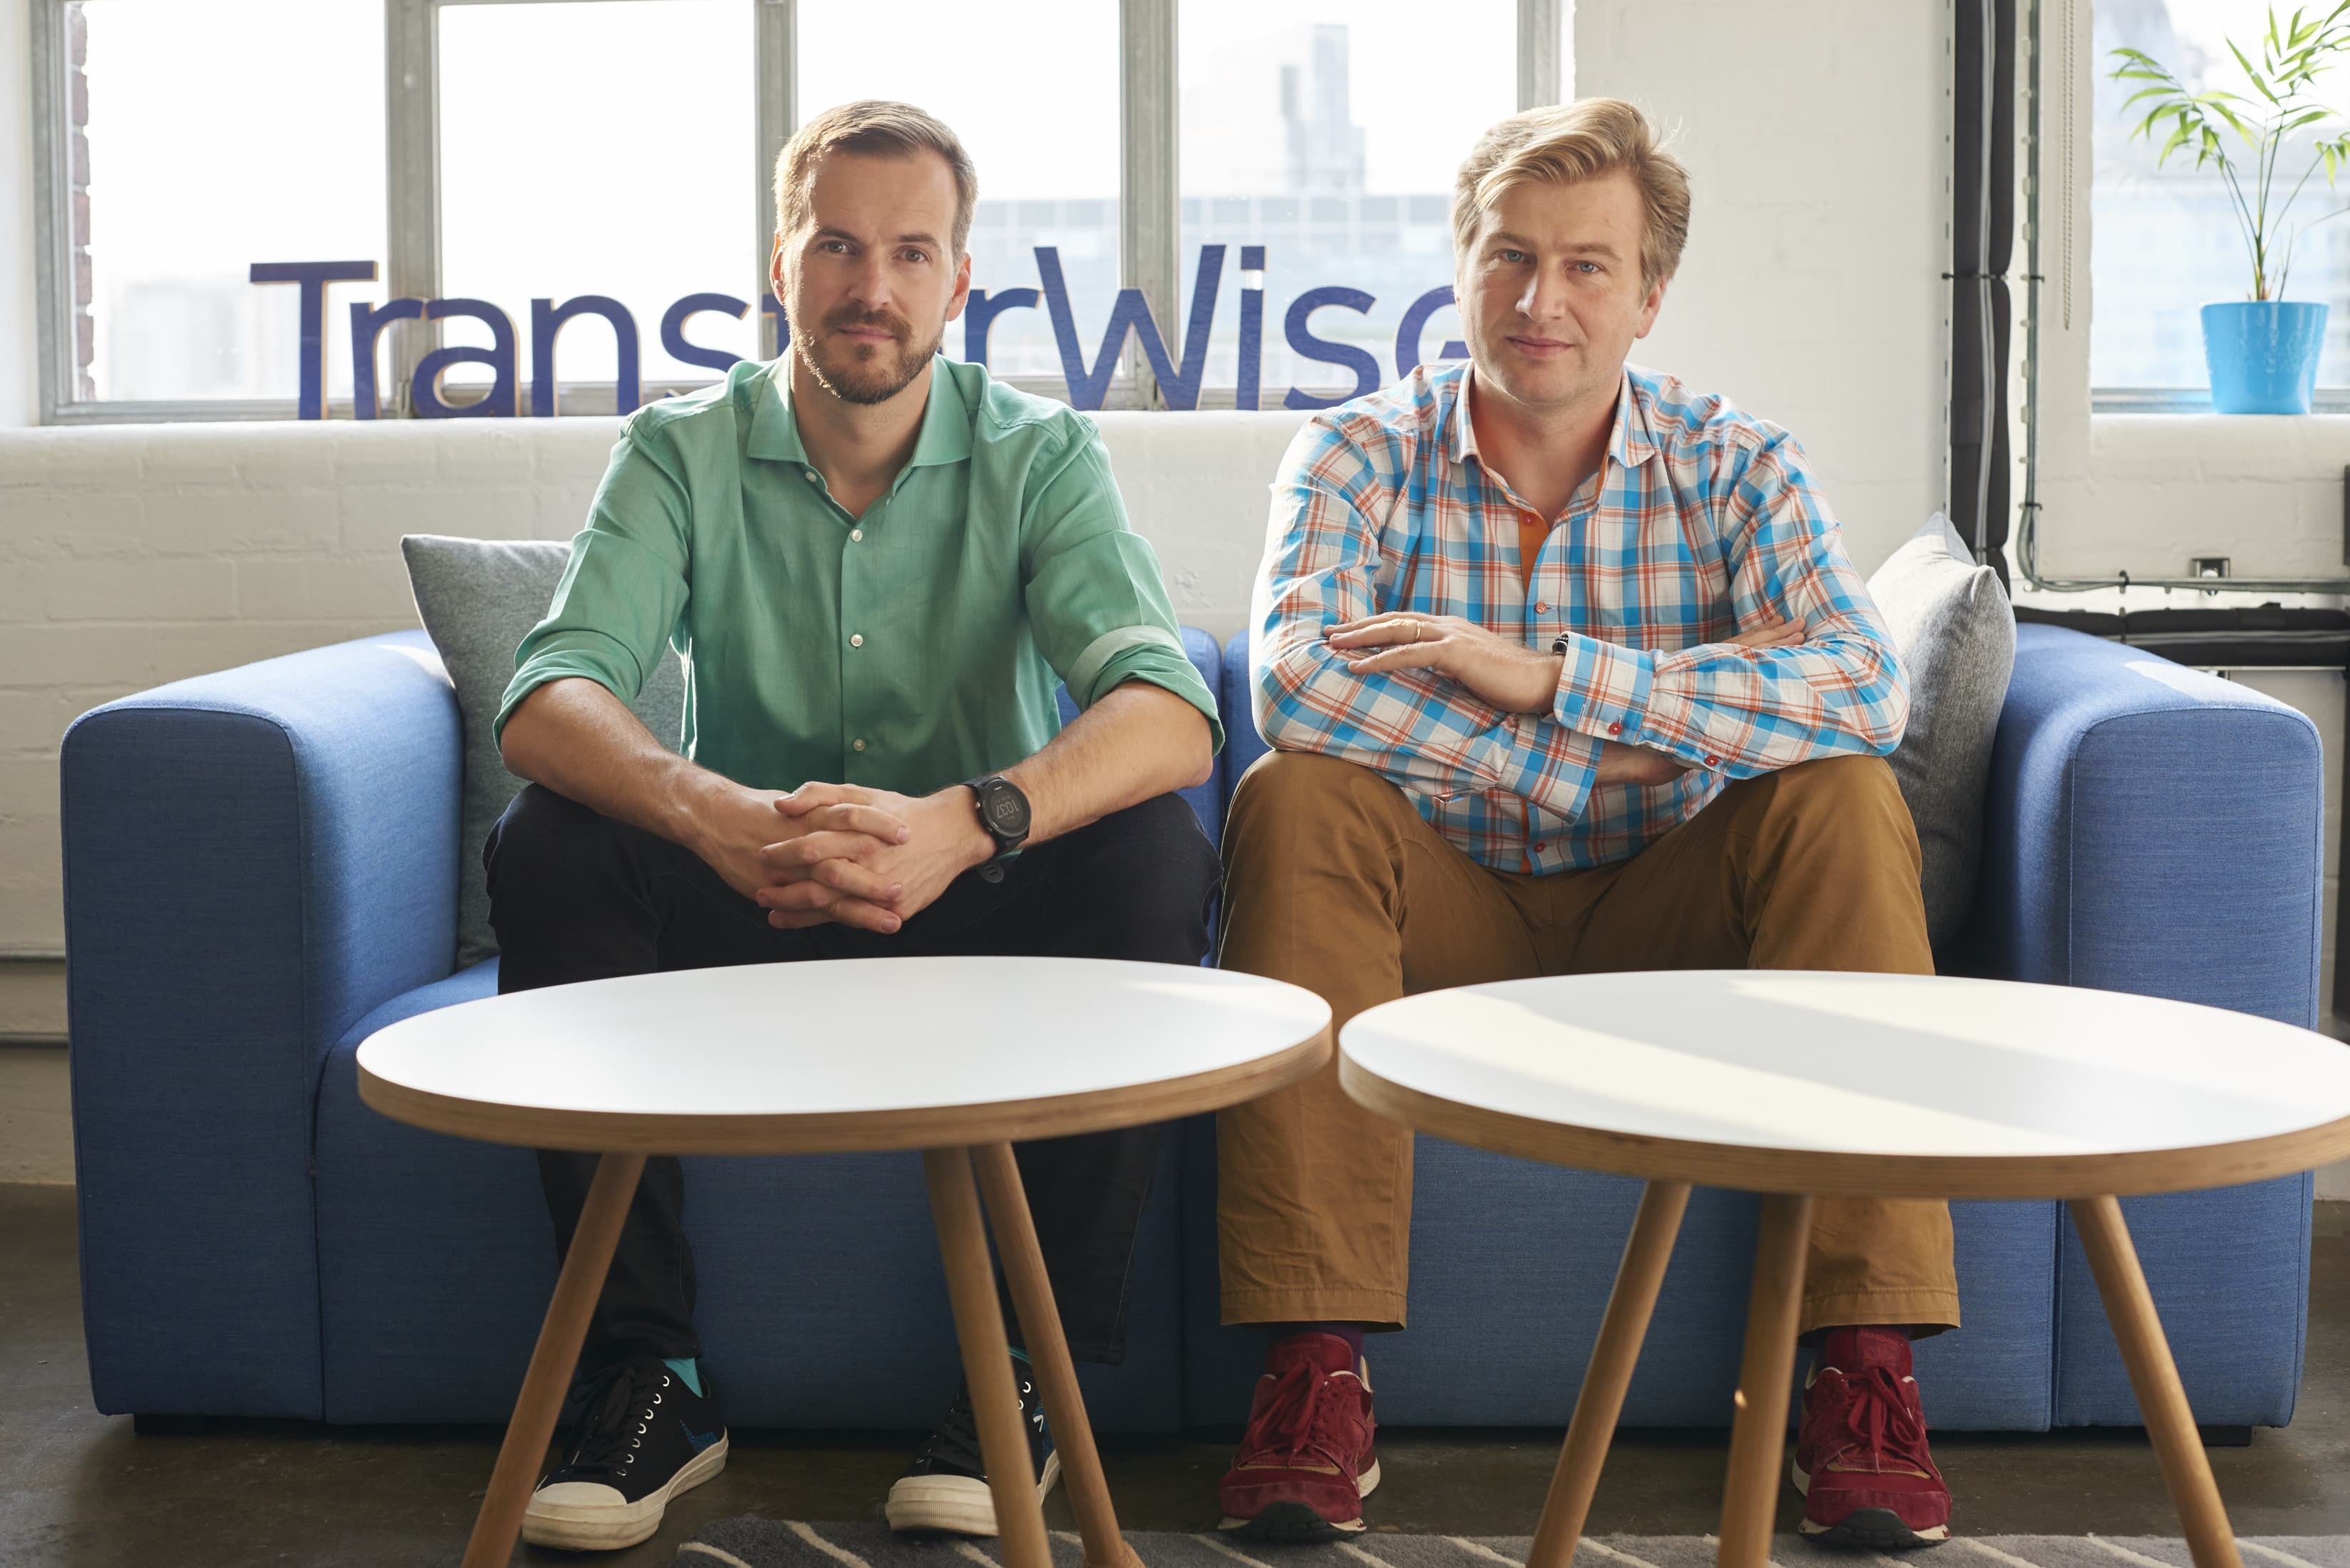 TransferWise is now Europe's most valuable fintech start-up, with a $3.5 billion valuation